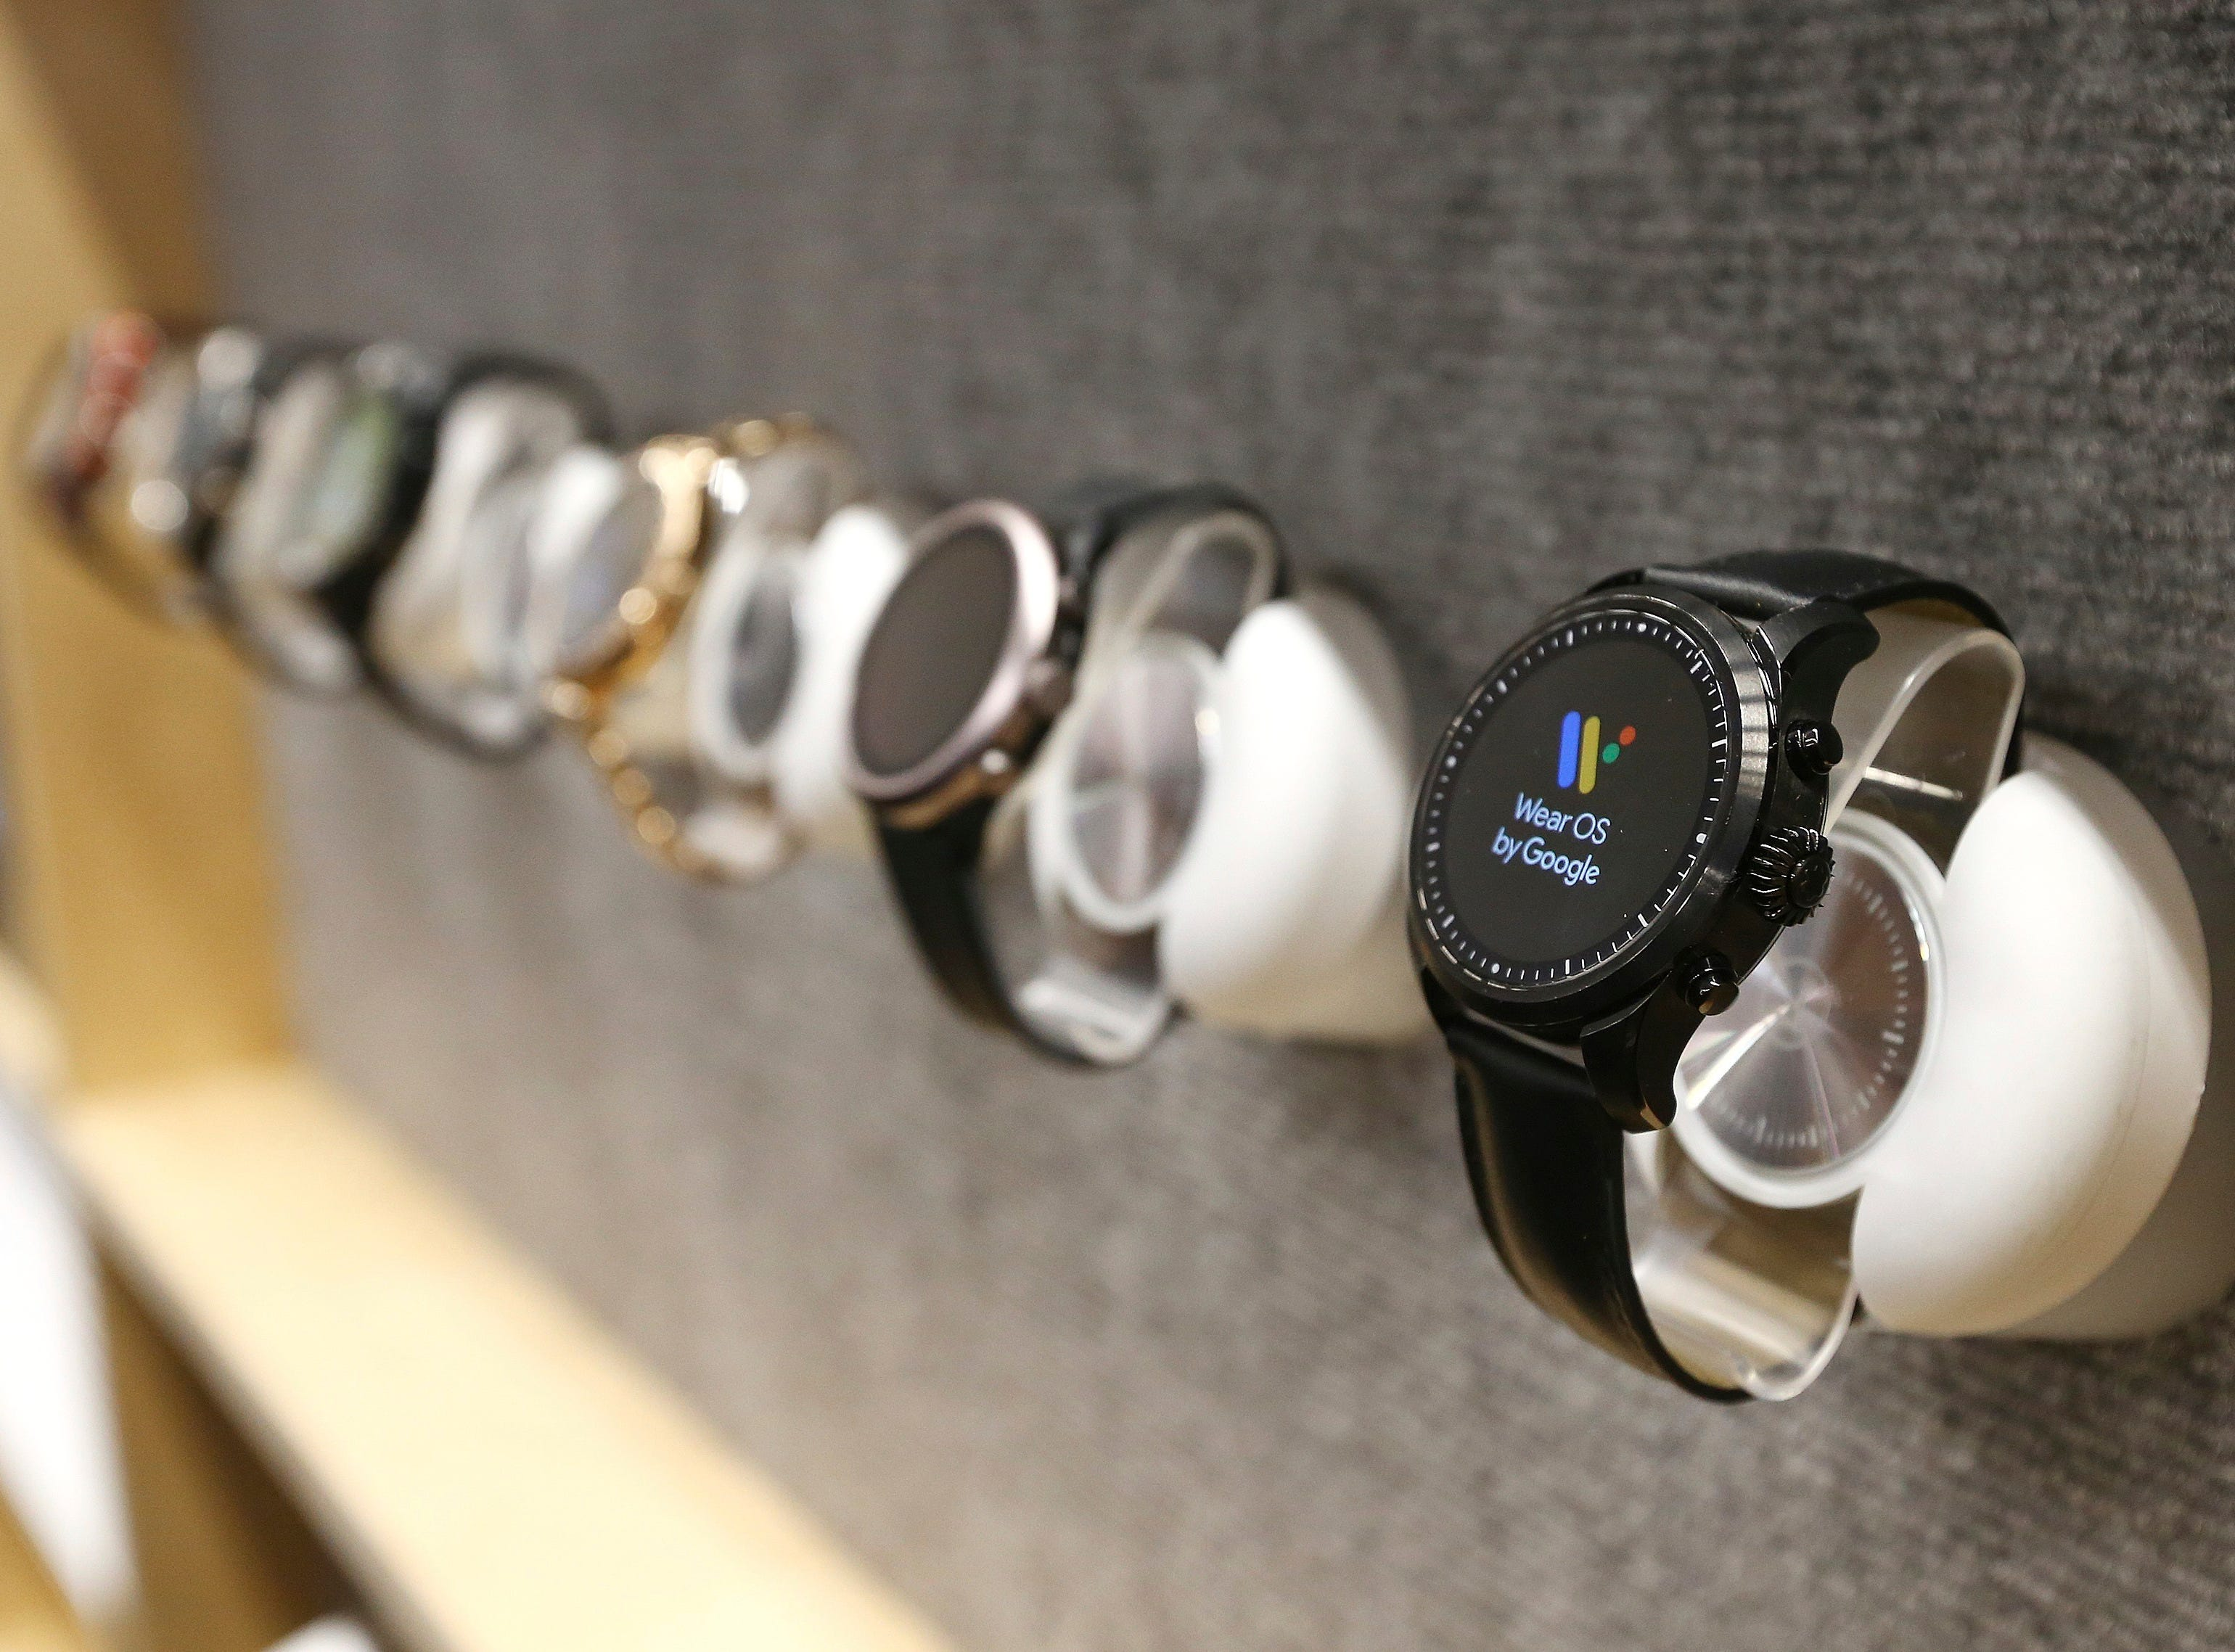 The Google Wear OS watches are on display at CES International on Tuesday, Jan. 8, 2019, in Las Vegas.